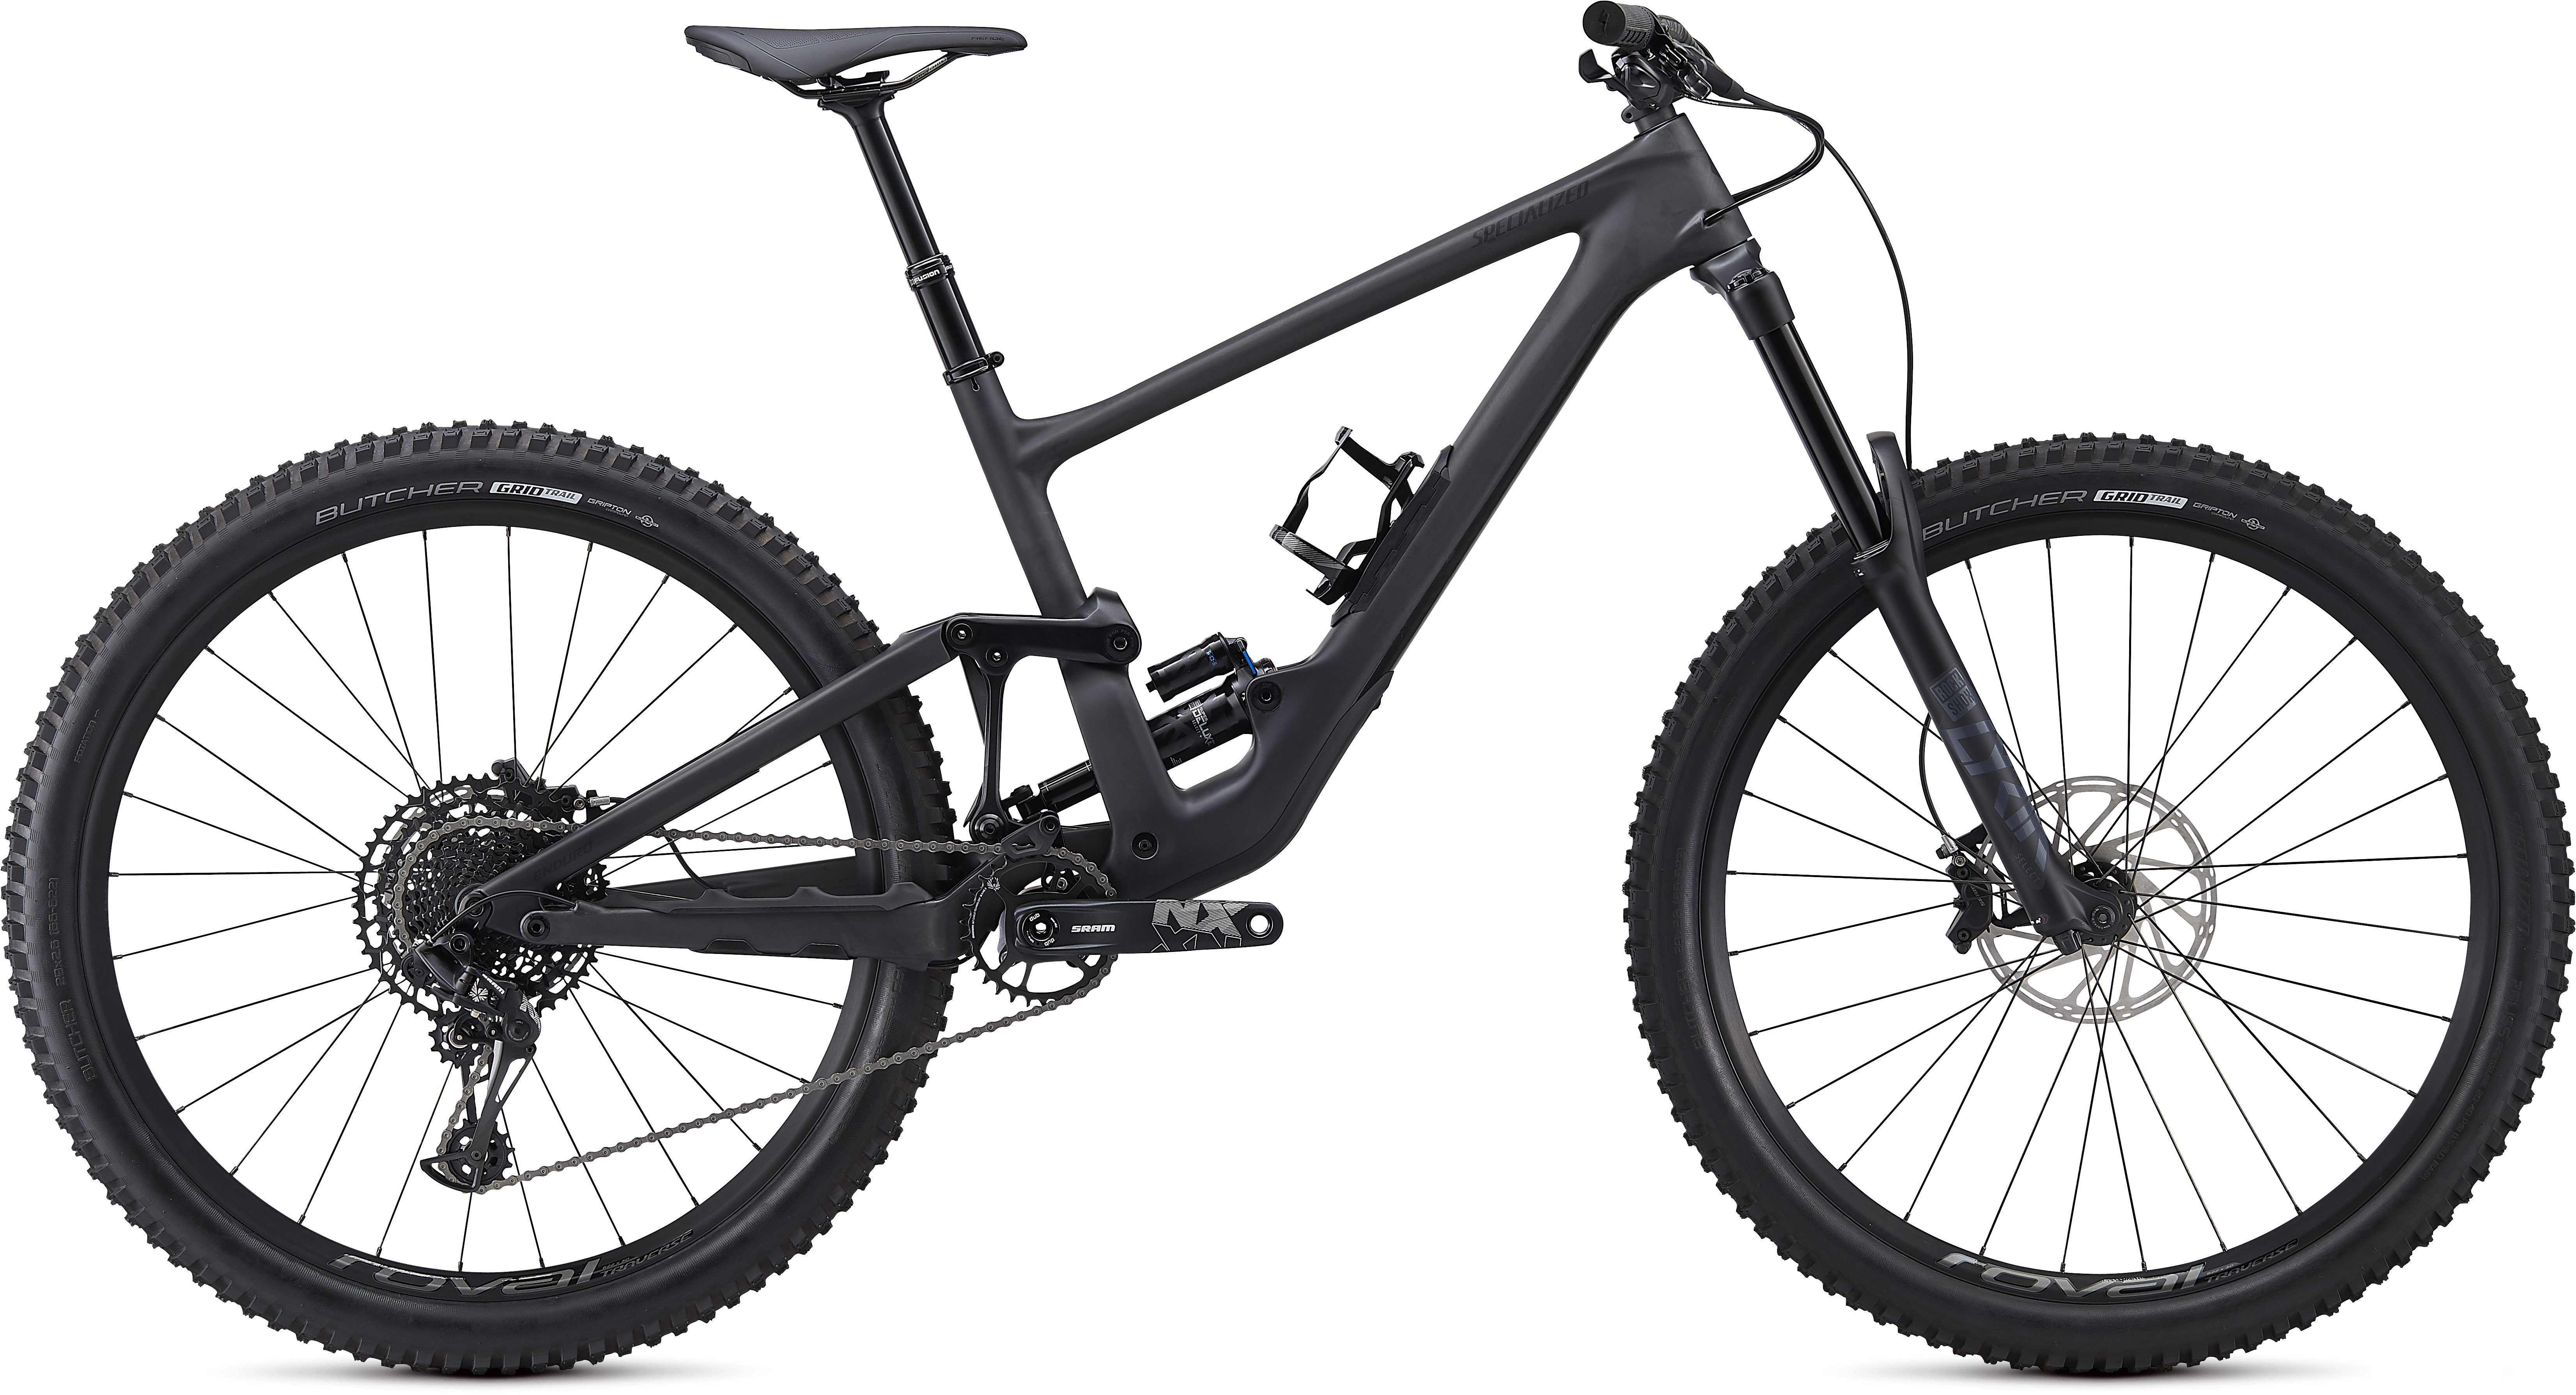 93620-52_ENDURO-COMP-CARBON-29-BLK-CHAR_HERO.jpg